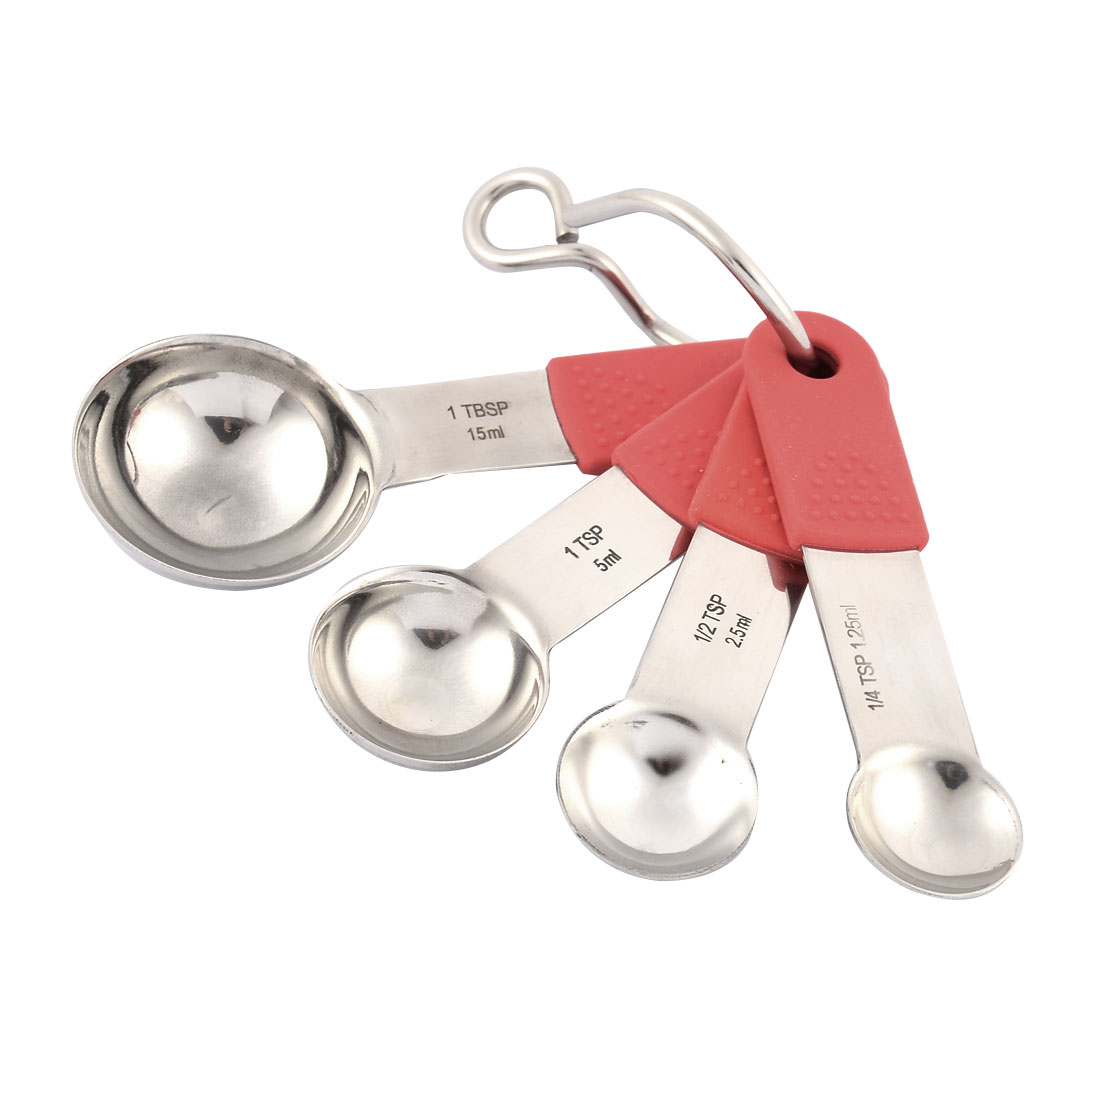 Kitchen Cooking Silicone Handle Stainless Steel Measuring Spoon Cup Set 4 in 1